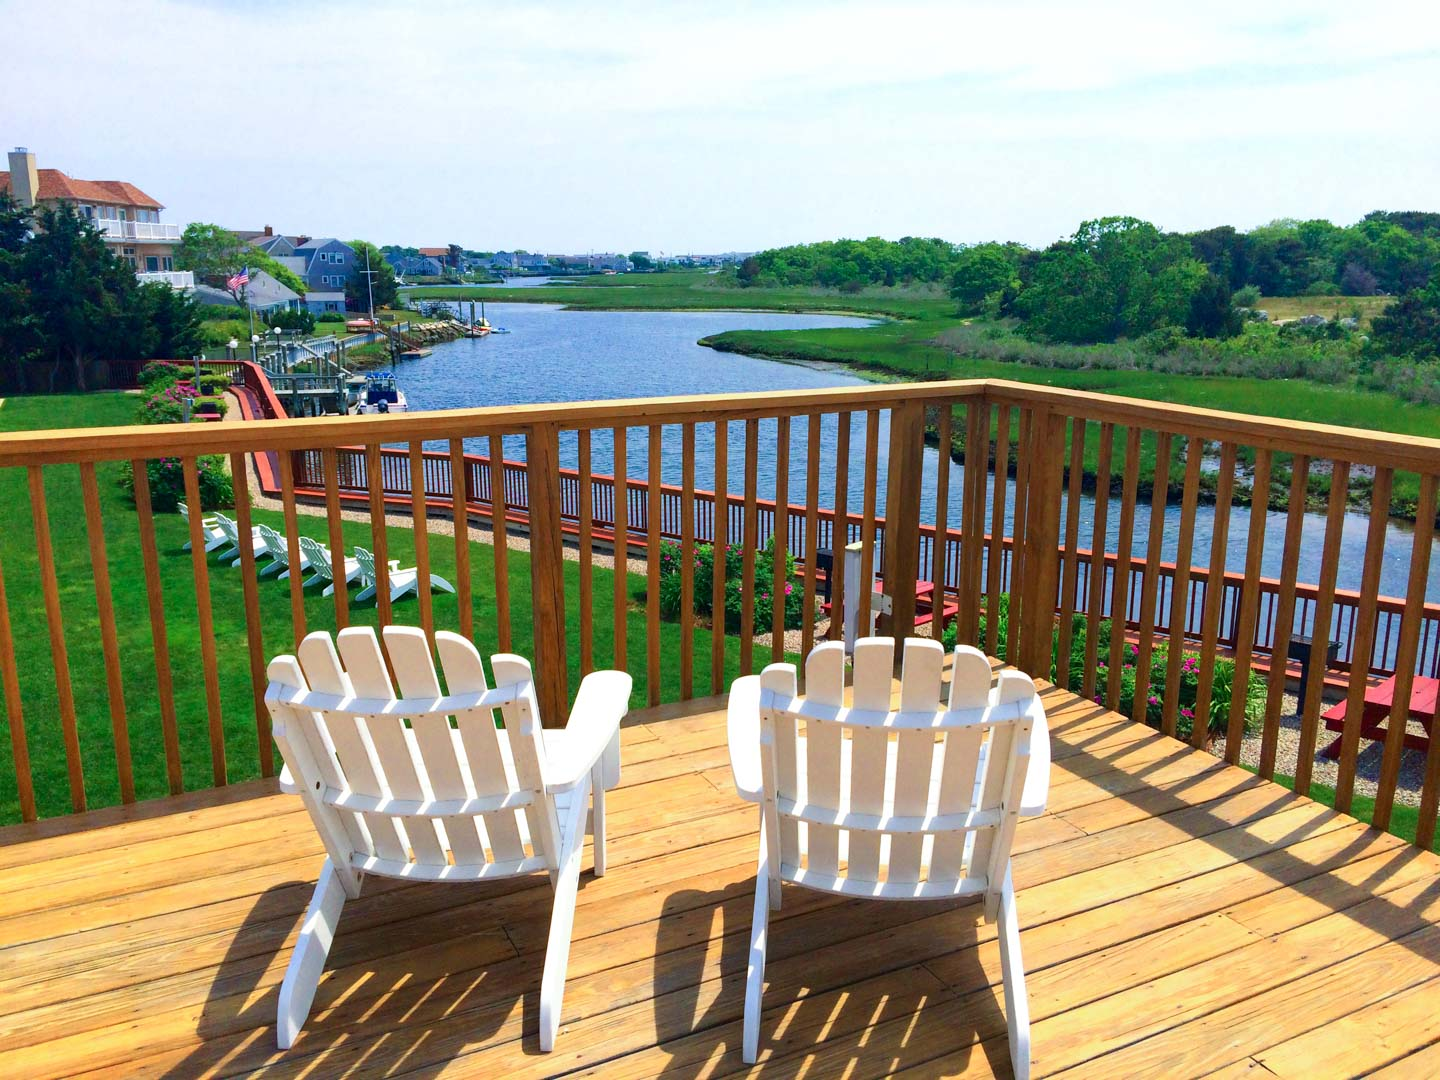 A cozy lounging area at VRI's Riverview Resort in Massachusetts.